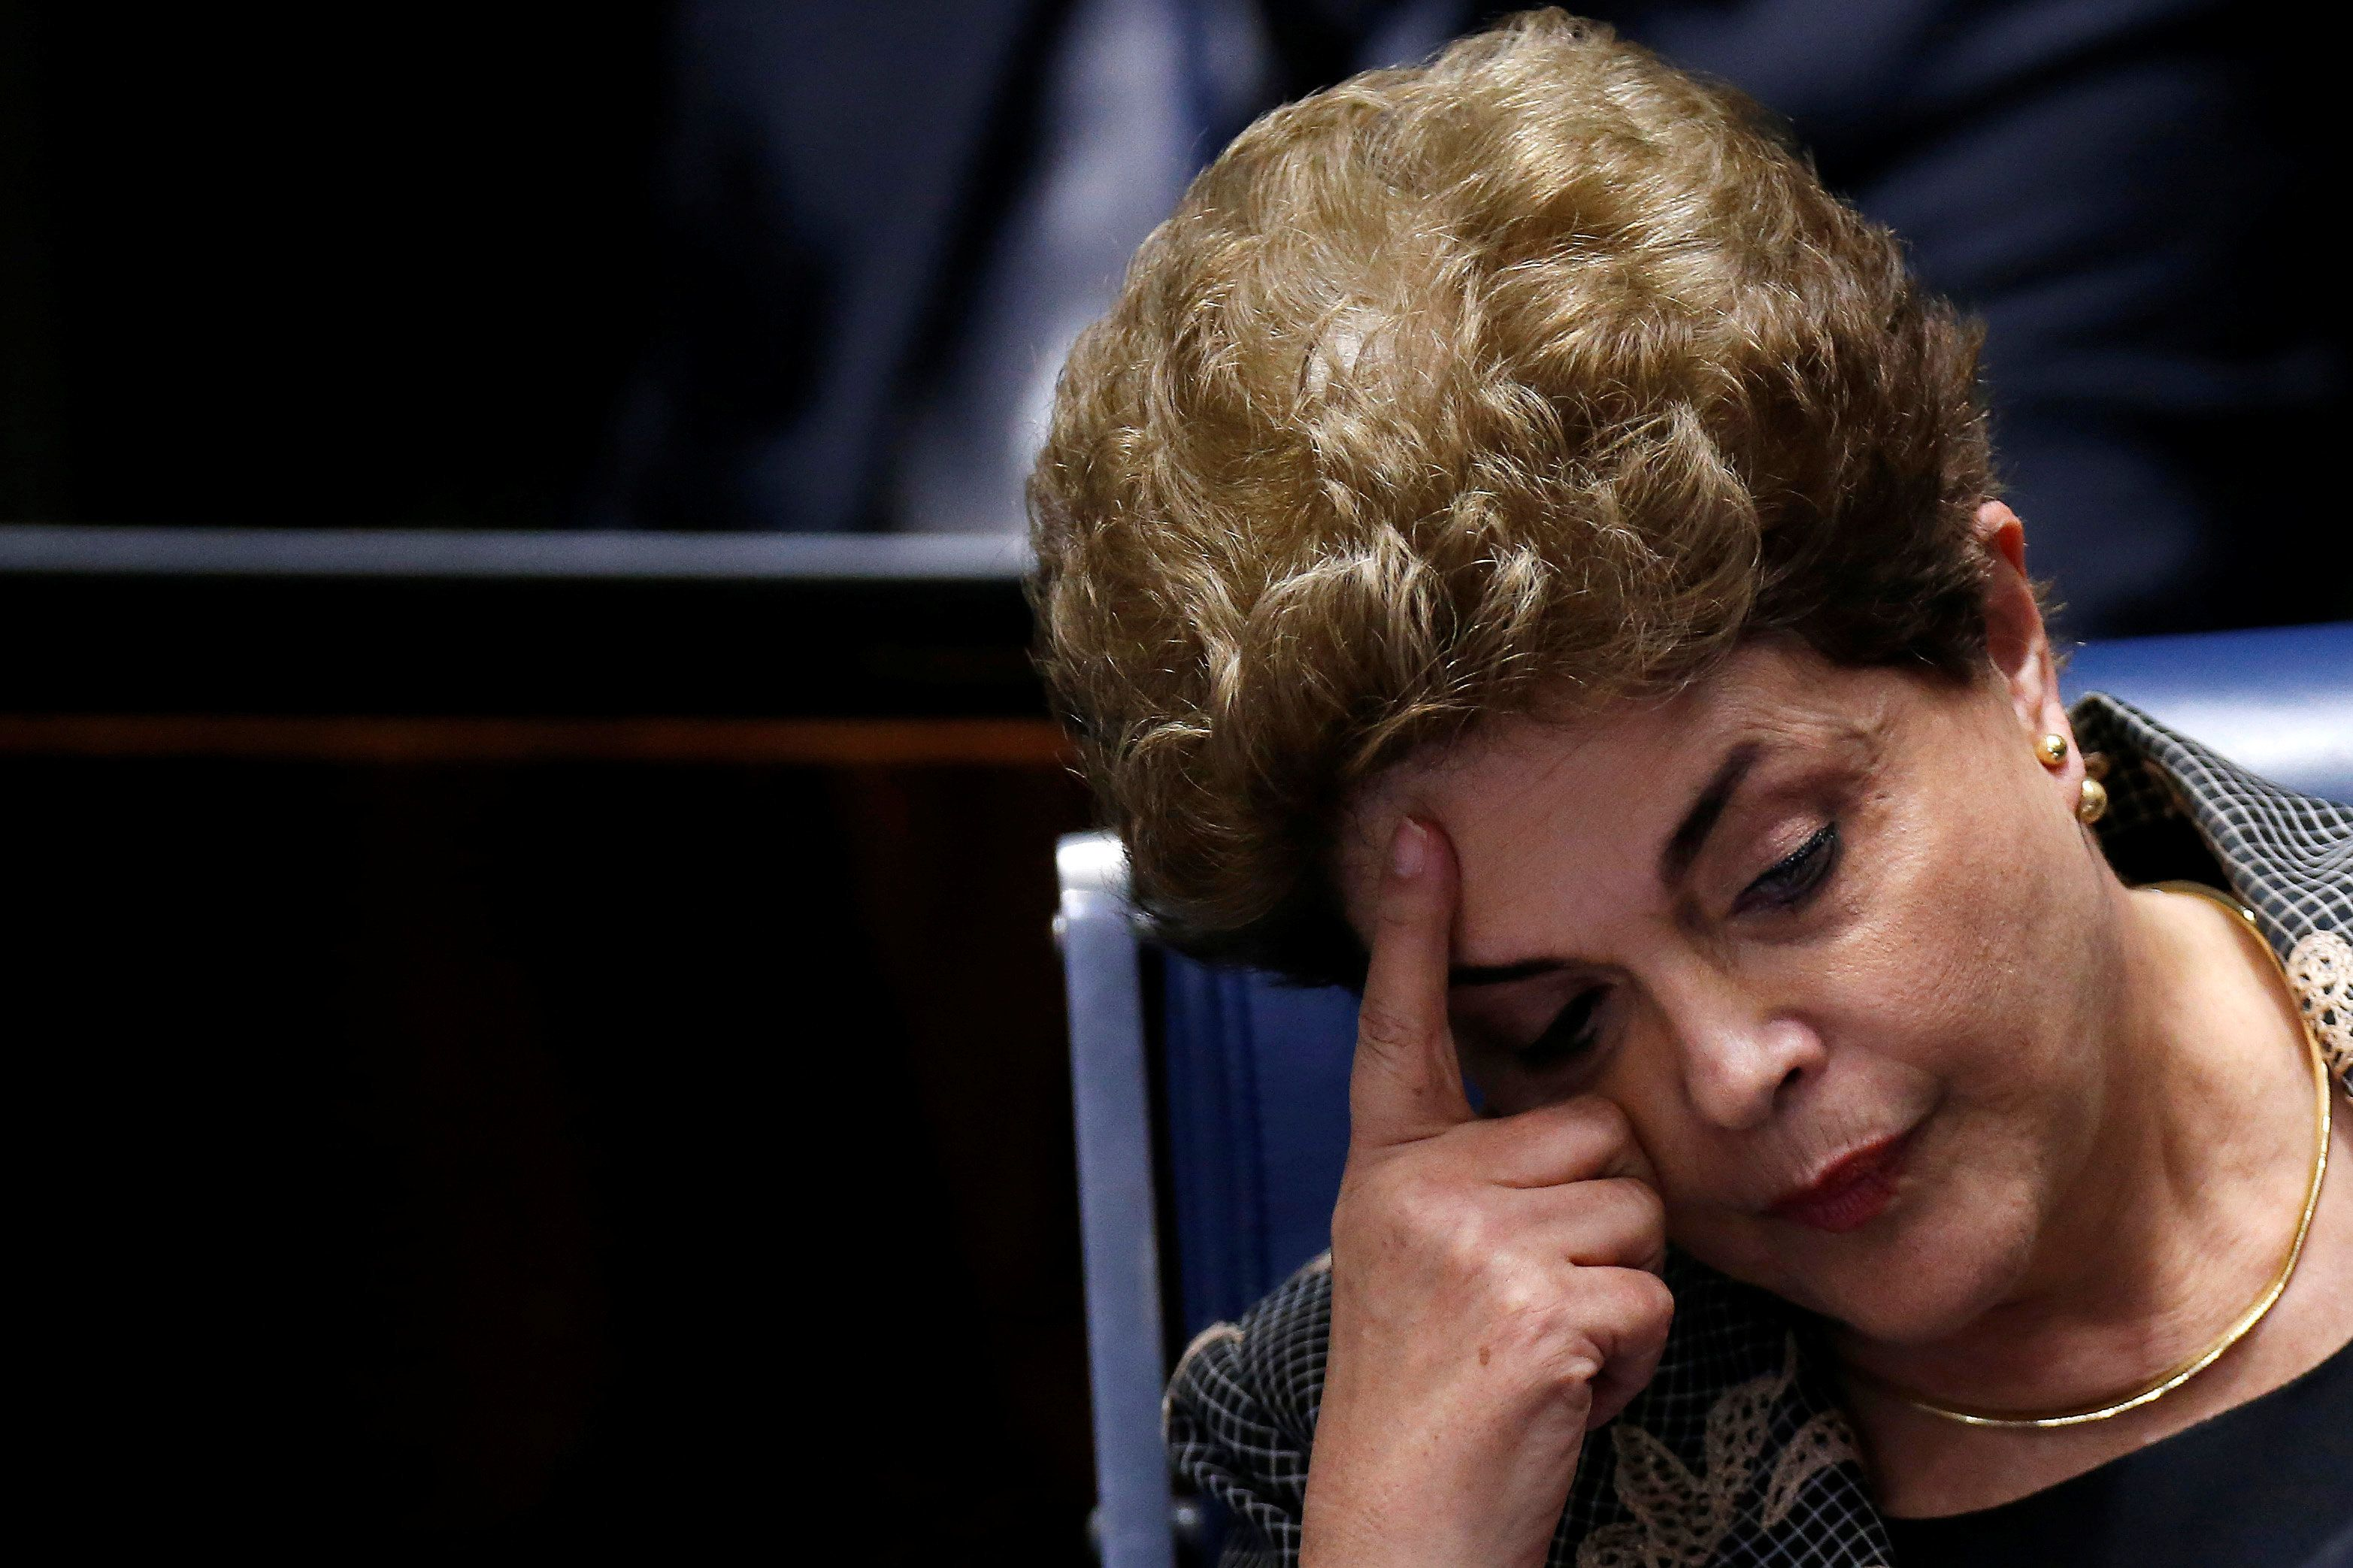 Brazil's suspended President Dilma Rousseff attends the final session of debate and voting on Rousseff's...